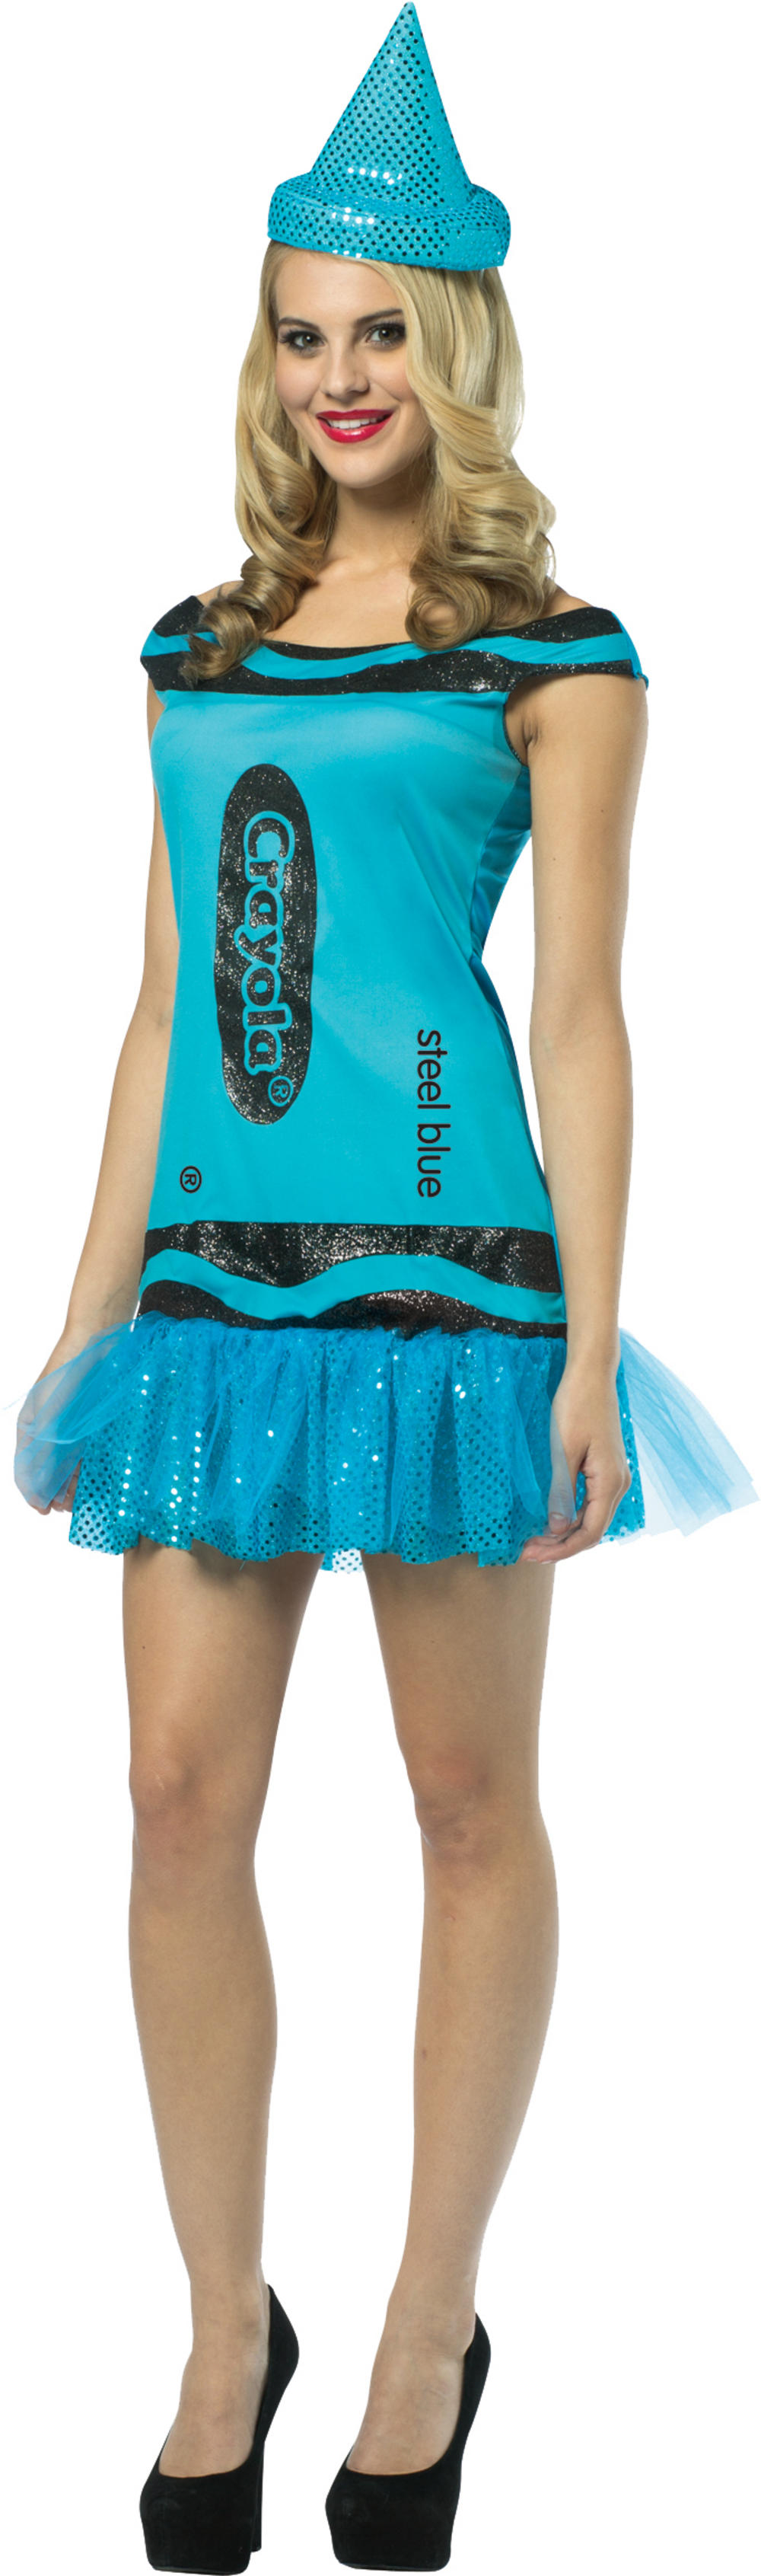 Steel Blue Crayola Glitter Dress Ladies Costume